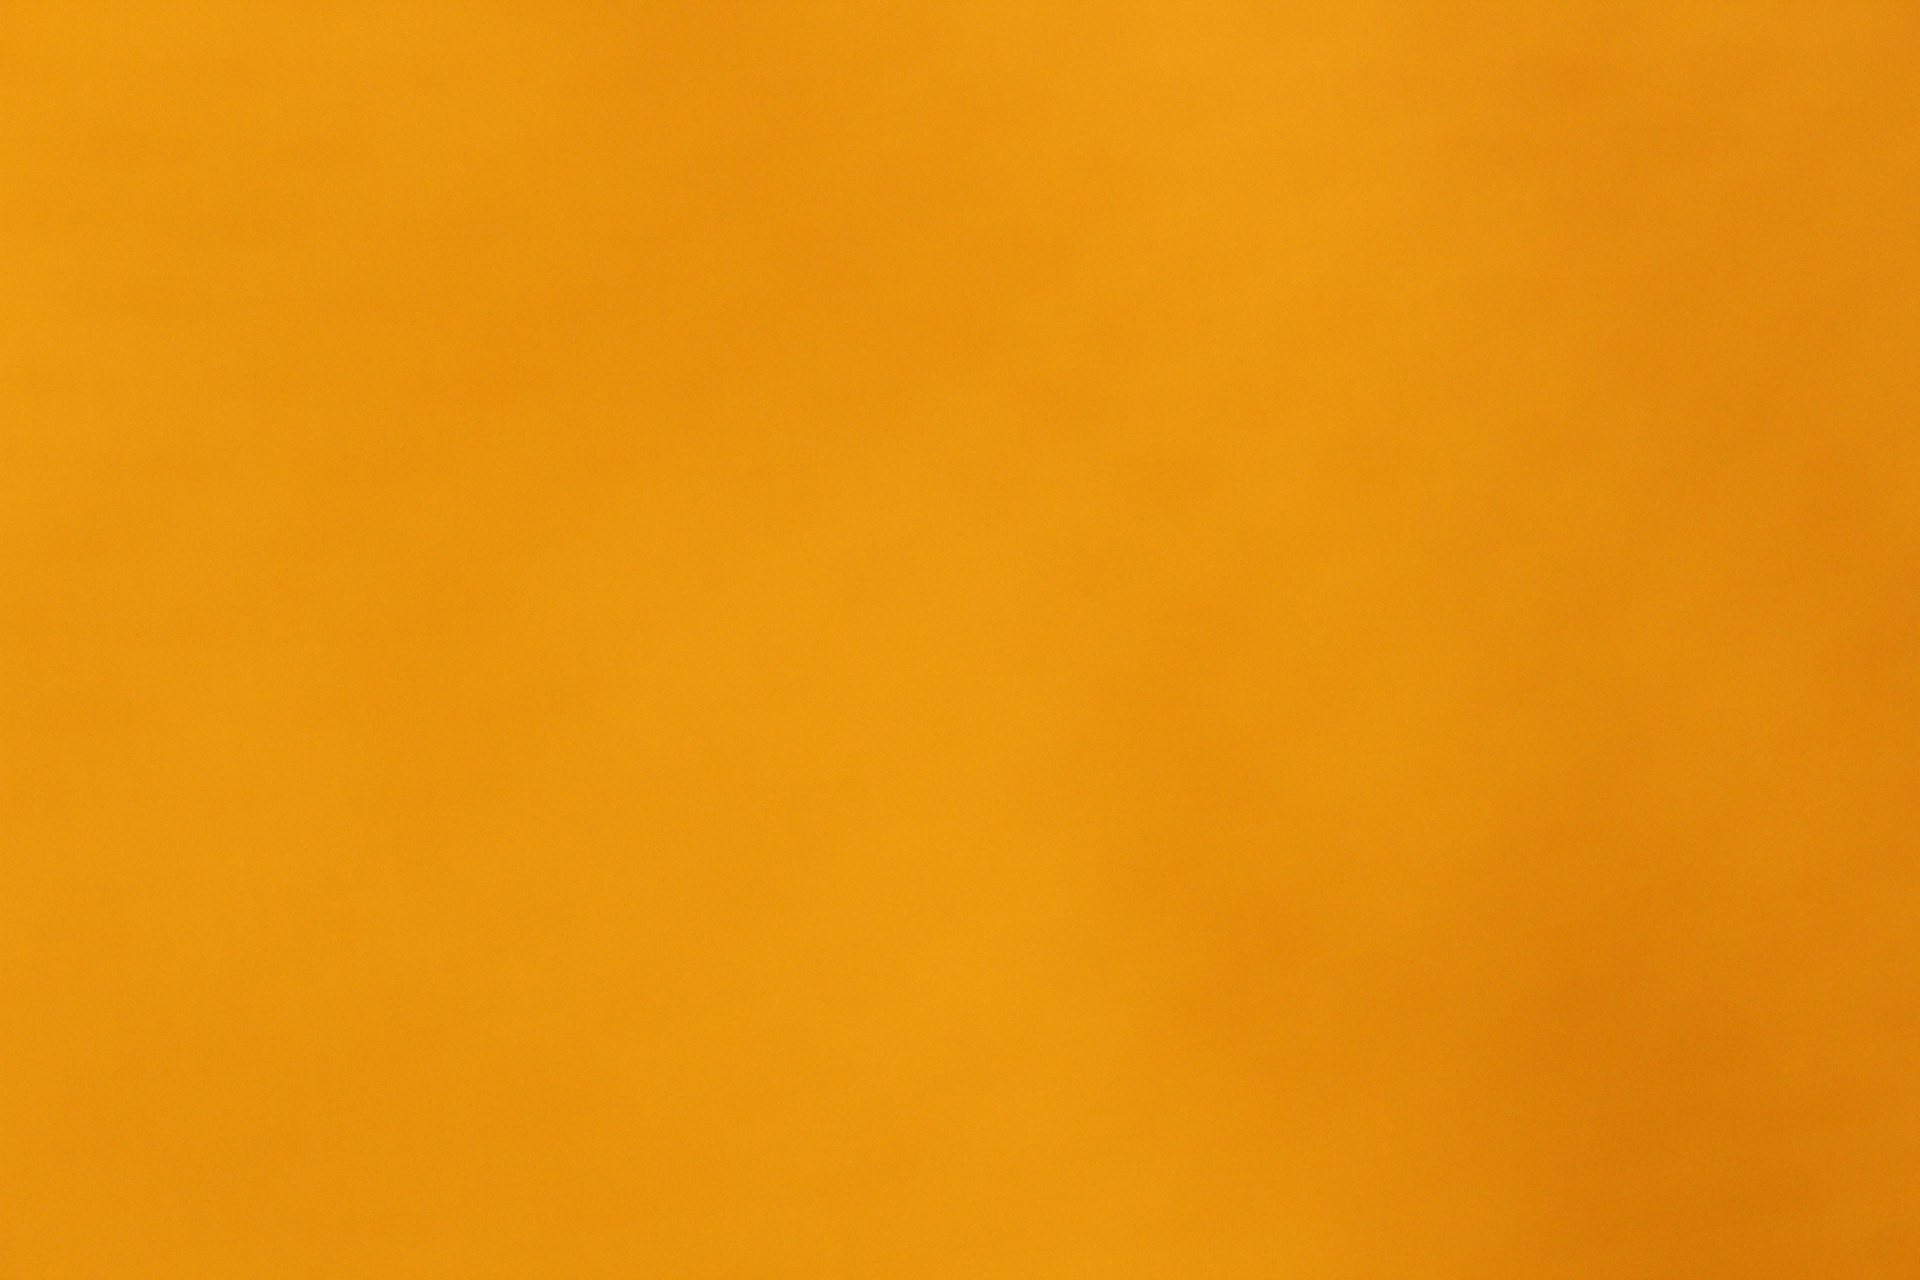 Orange Background Stock Photo HD   Public Domain Pictures 1920x1280